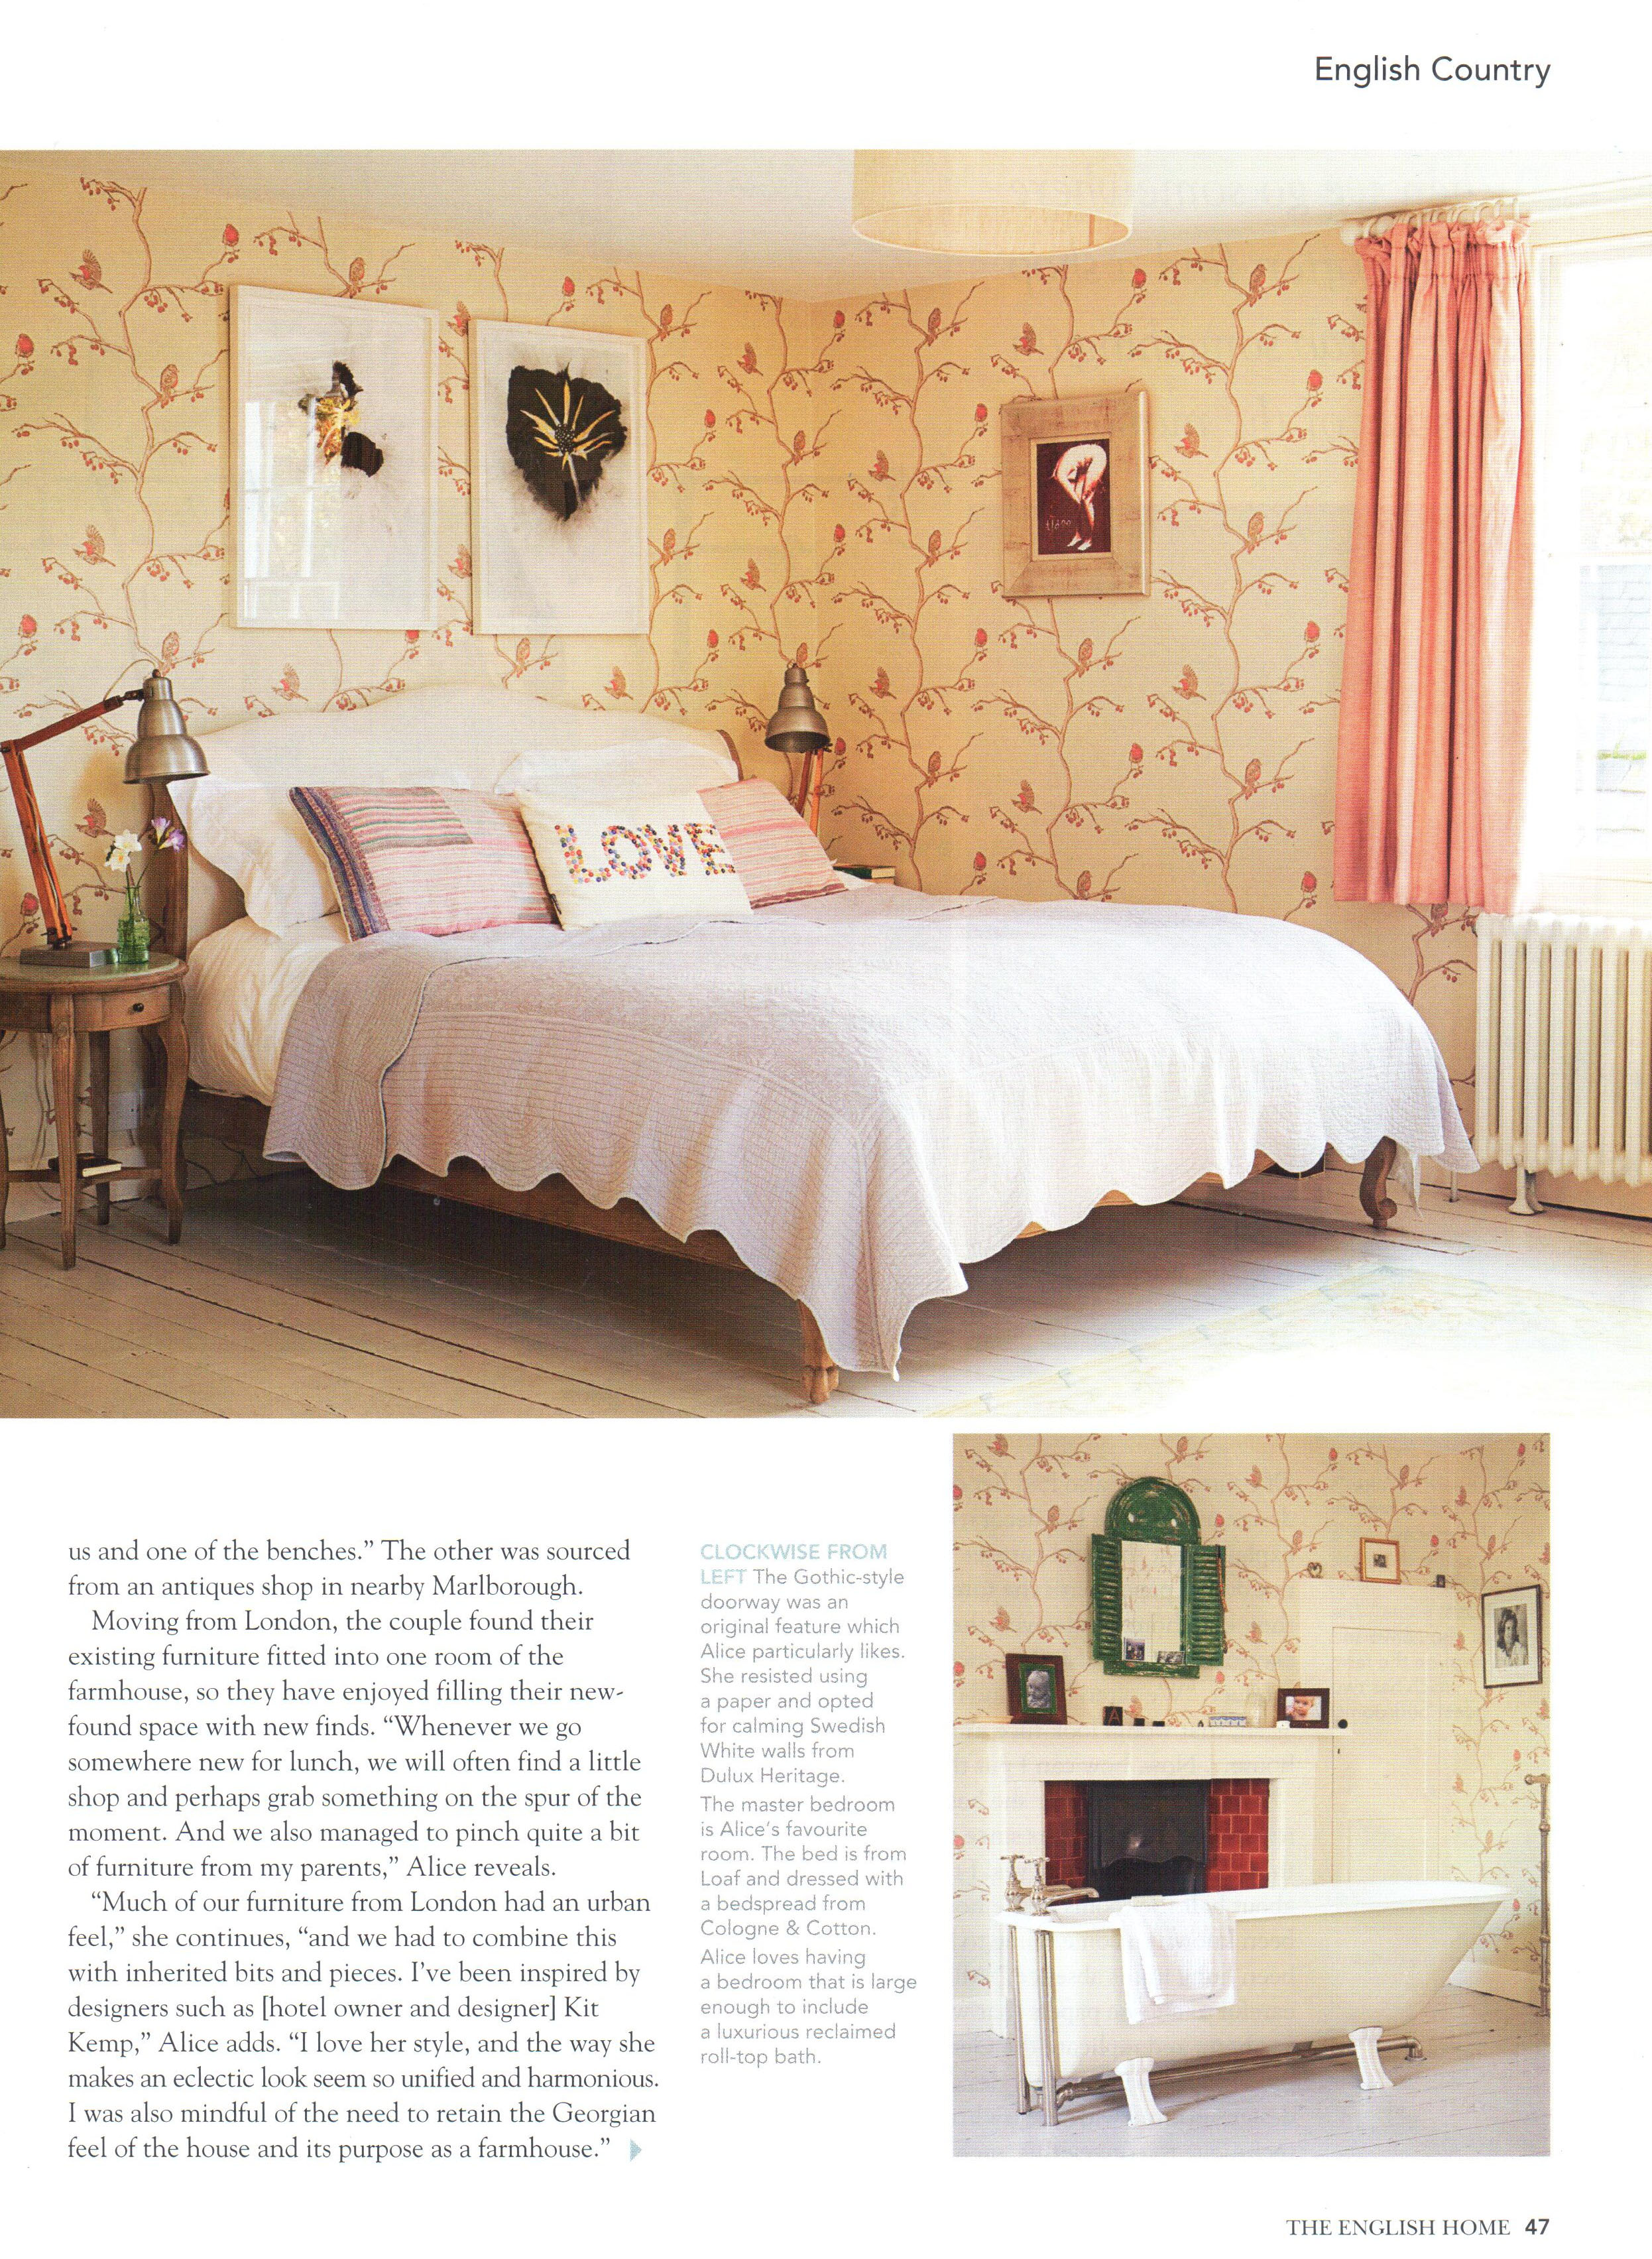 The English Home - May 2014 - Article, page 6